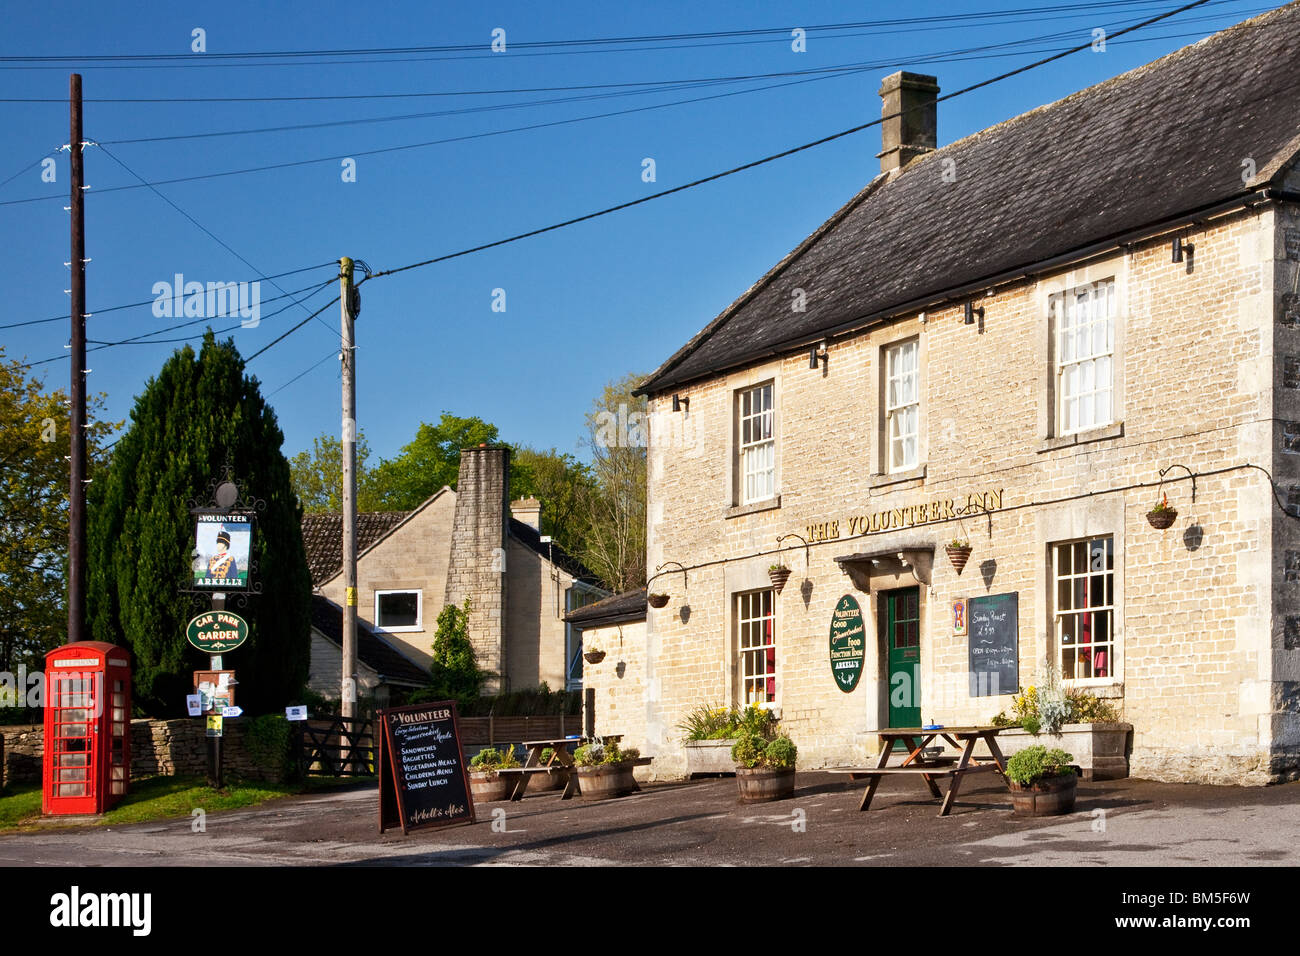 The Volunteer a typical English pub in the Wiltshire village of Great Somerford,UK - Stock Image